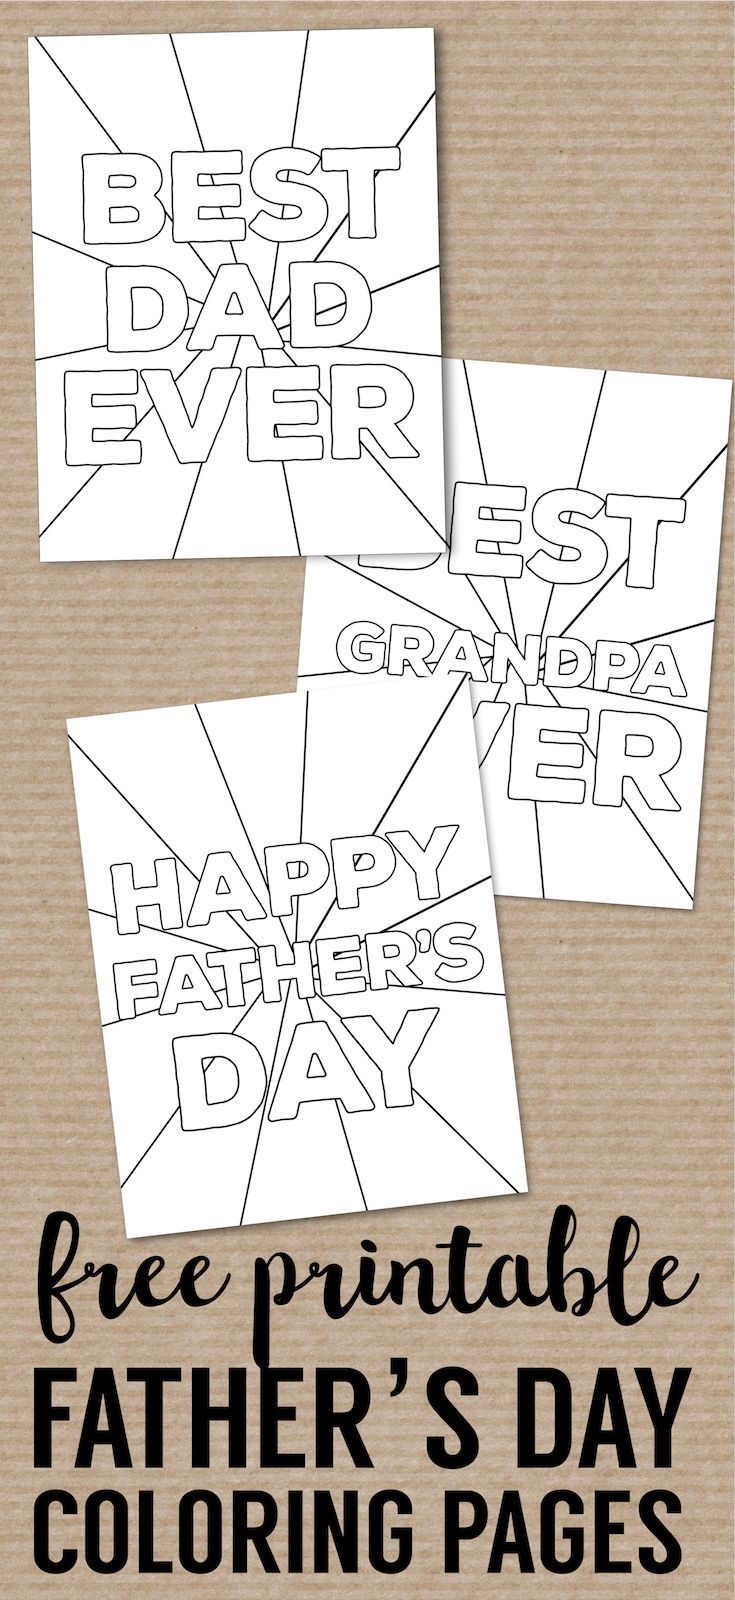 Happy Father's Day Coloring Pages Free Printables - Paper ...